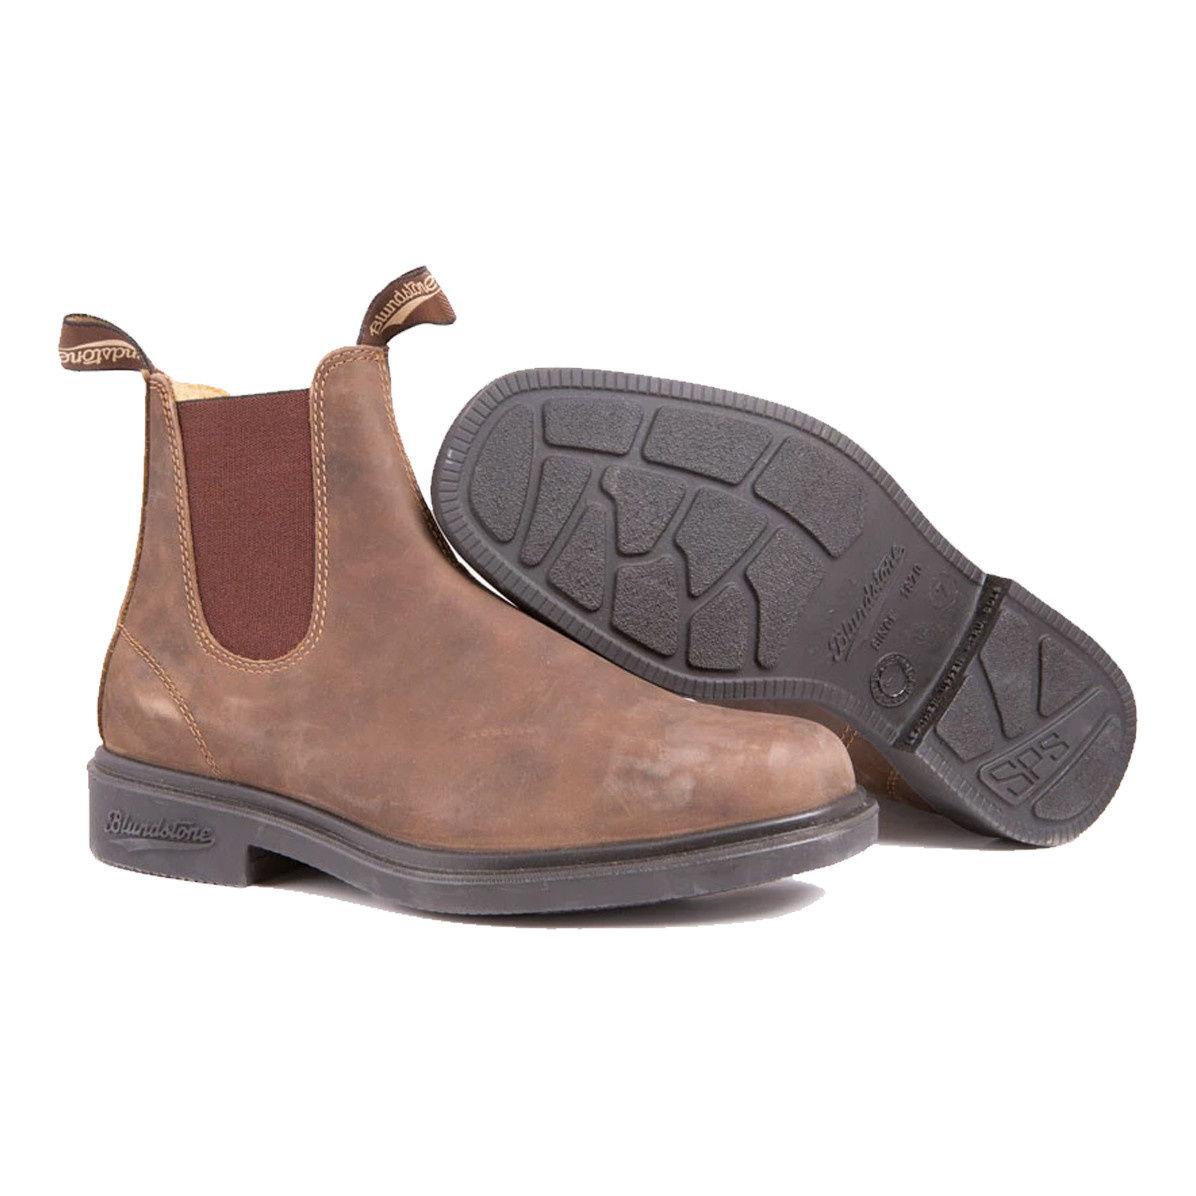 Blundstone Blundstone 1306 Leather Lined Chisel Toe Rustic Brown